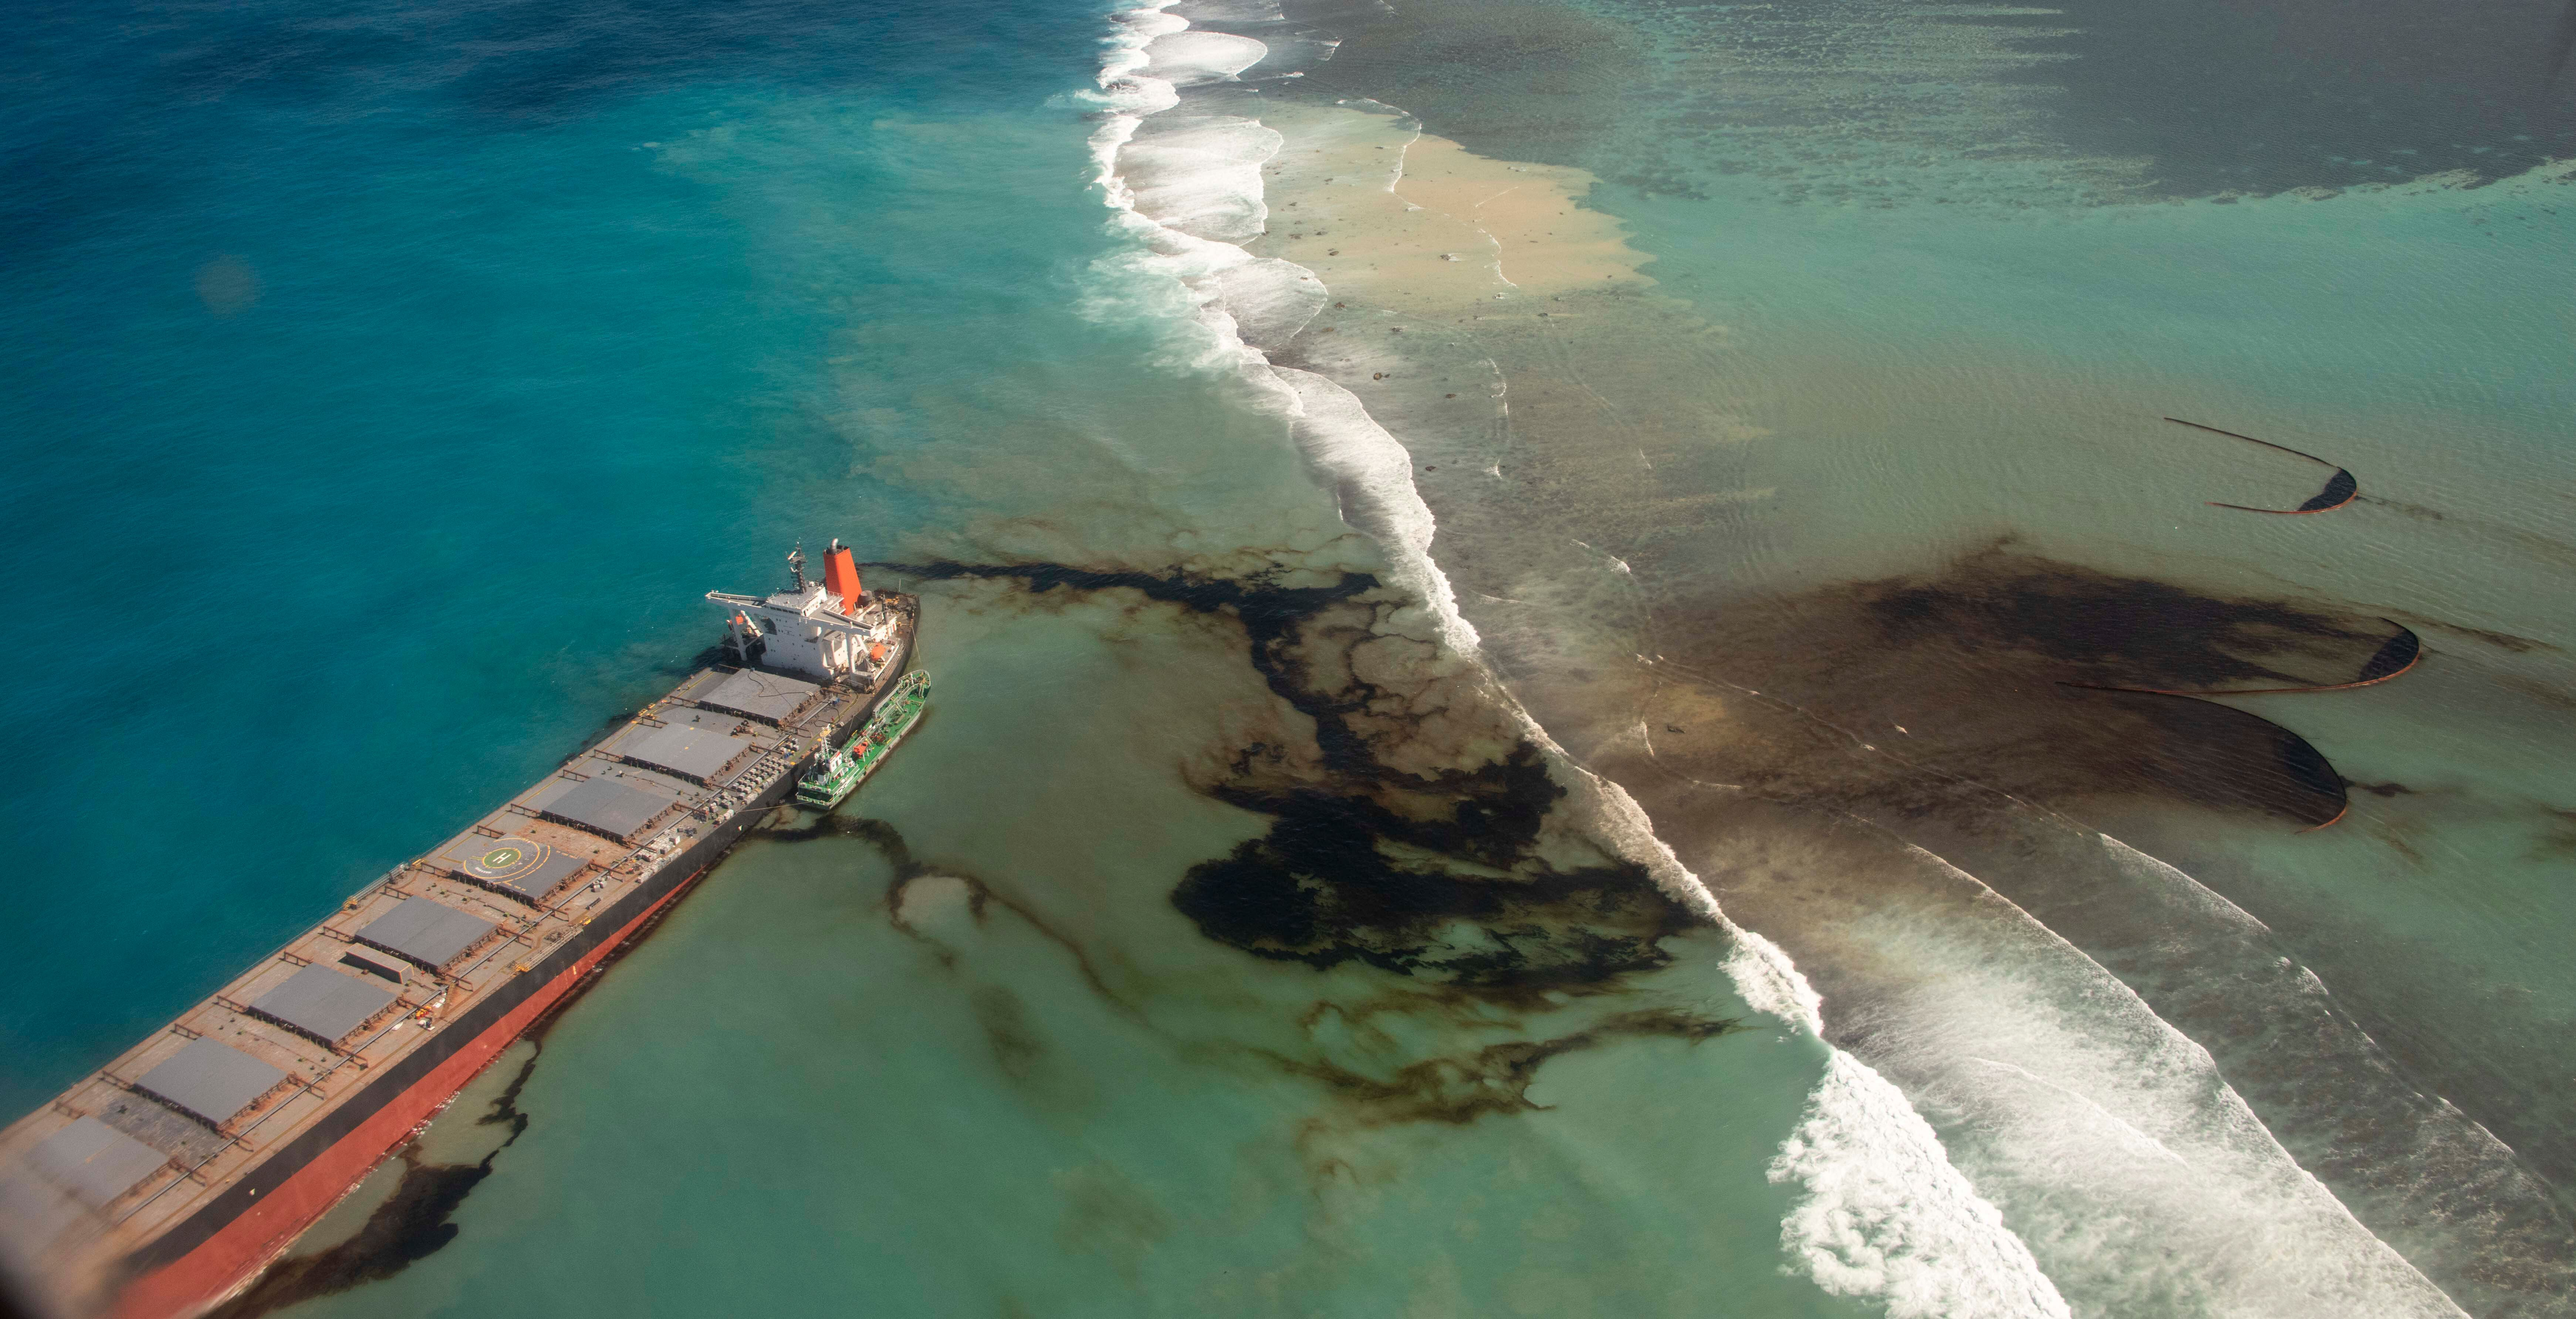 It was estimated the tanker has already leaked about 1,300 metric tons of oil into the ocean.